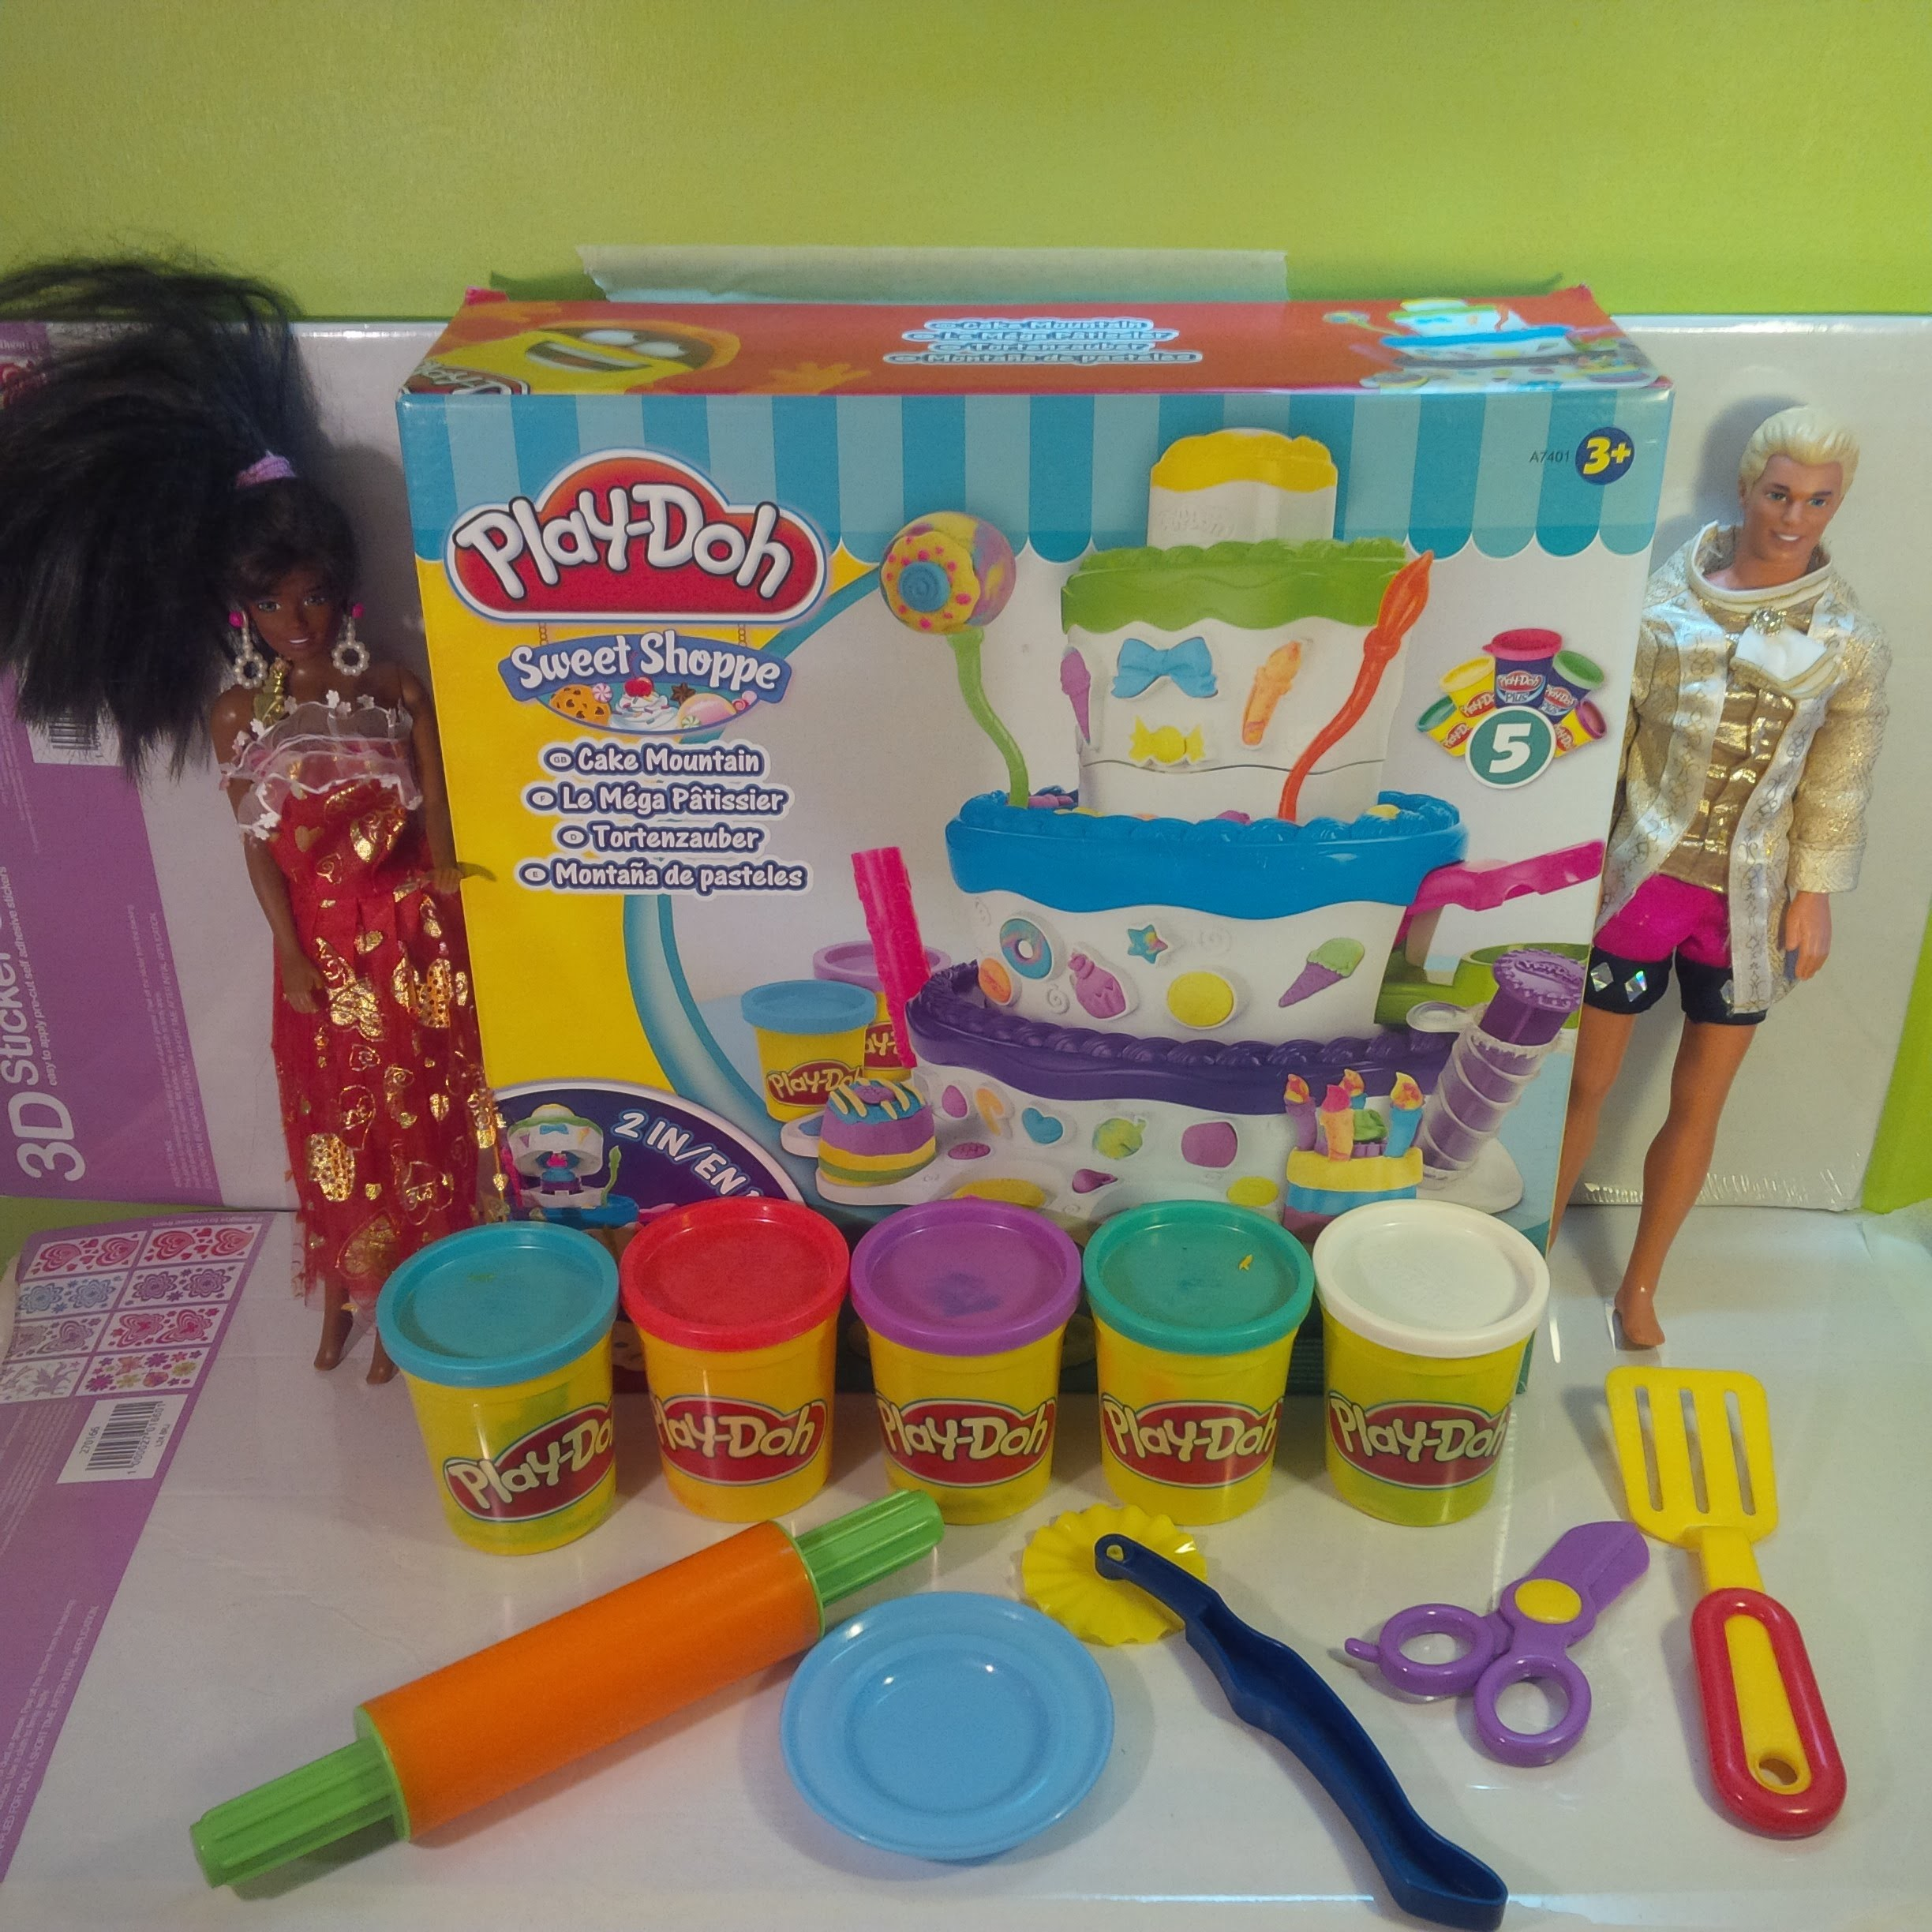 Play-Doh Sweet Shoppe Birthday Cake Mountain unboxing